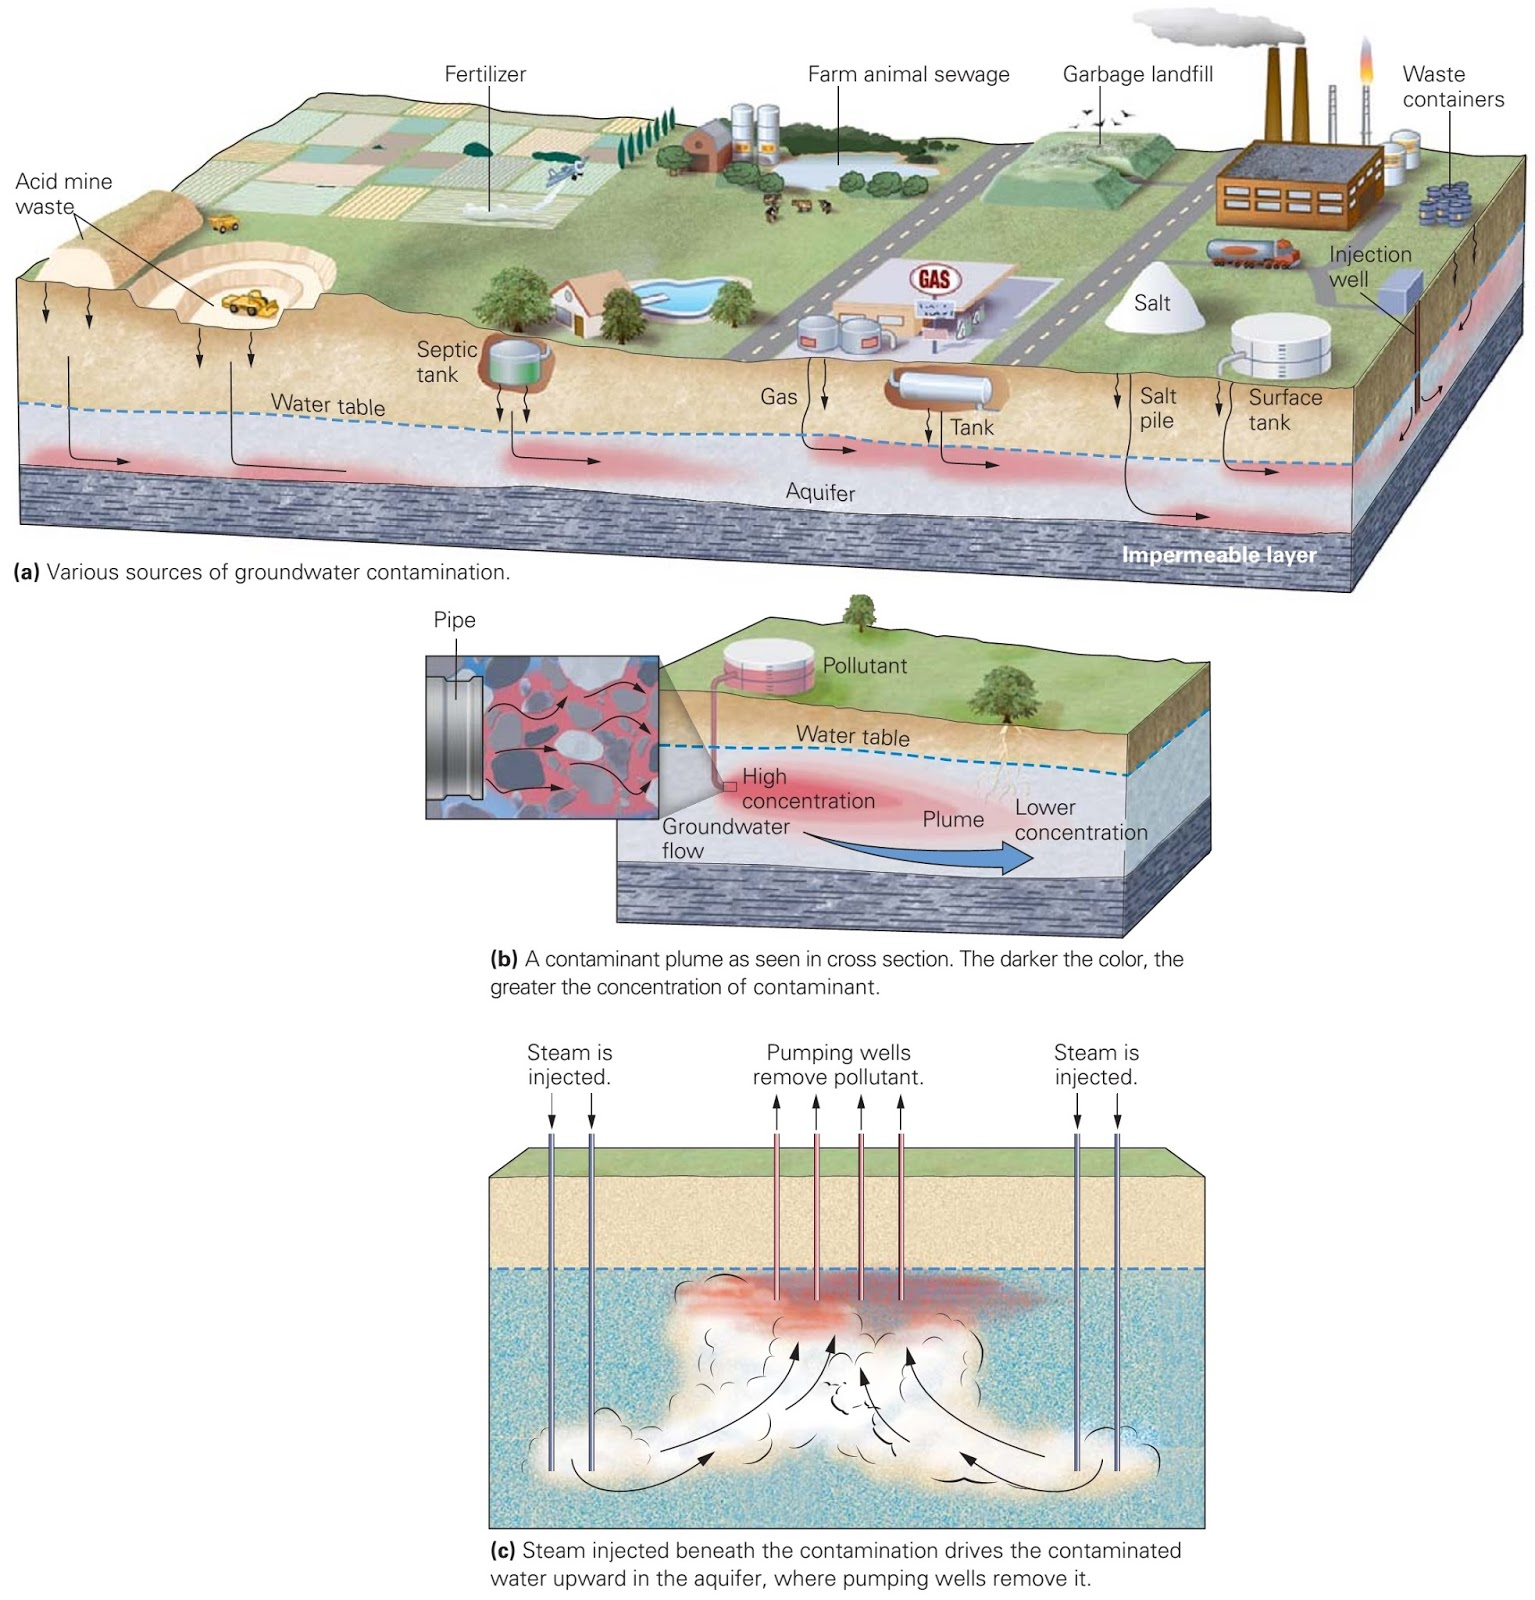 groundwater contamination Find excellent groundwater, drought, and groundwater quality information and educational resources here, as well as teaching materials and research products from dr thomas harter's groundwater research group.